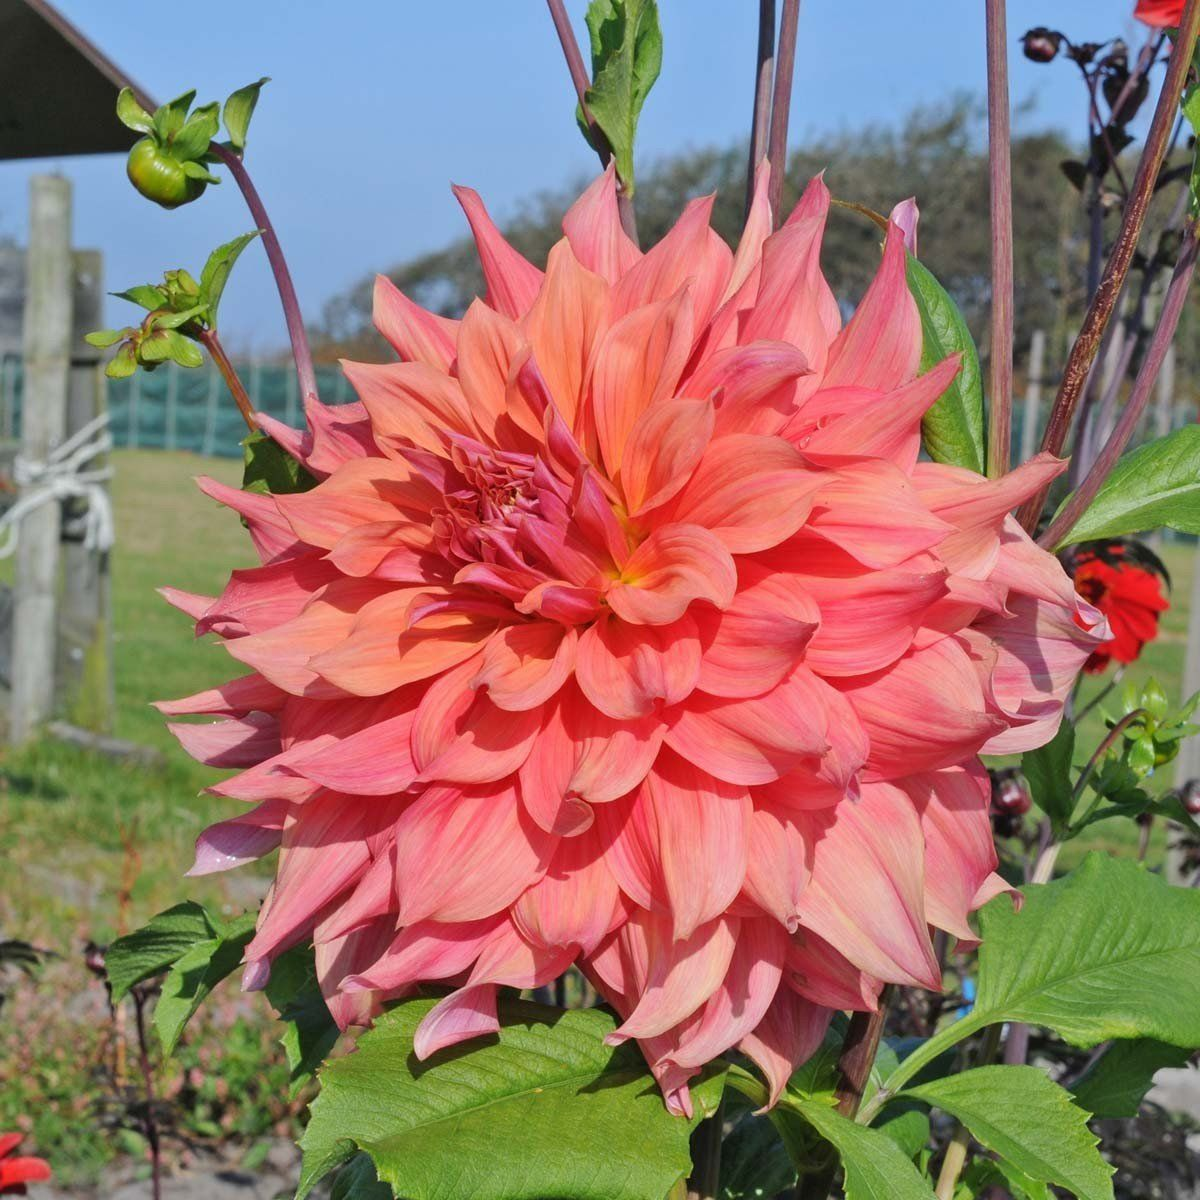 DAHLIA DINNERPLATE) ace summer sunset ( 2 Tuber ) Great Cut Flowers  Perennial & DAHLIA DINNERPLATE) ace summer sunset ( 2 Tuber ) Great Cut Flowers ...